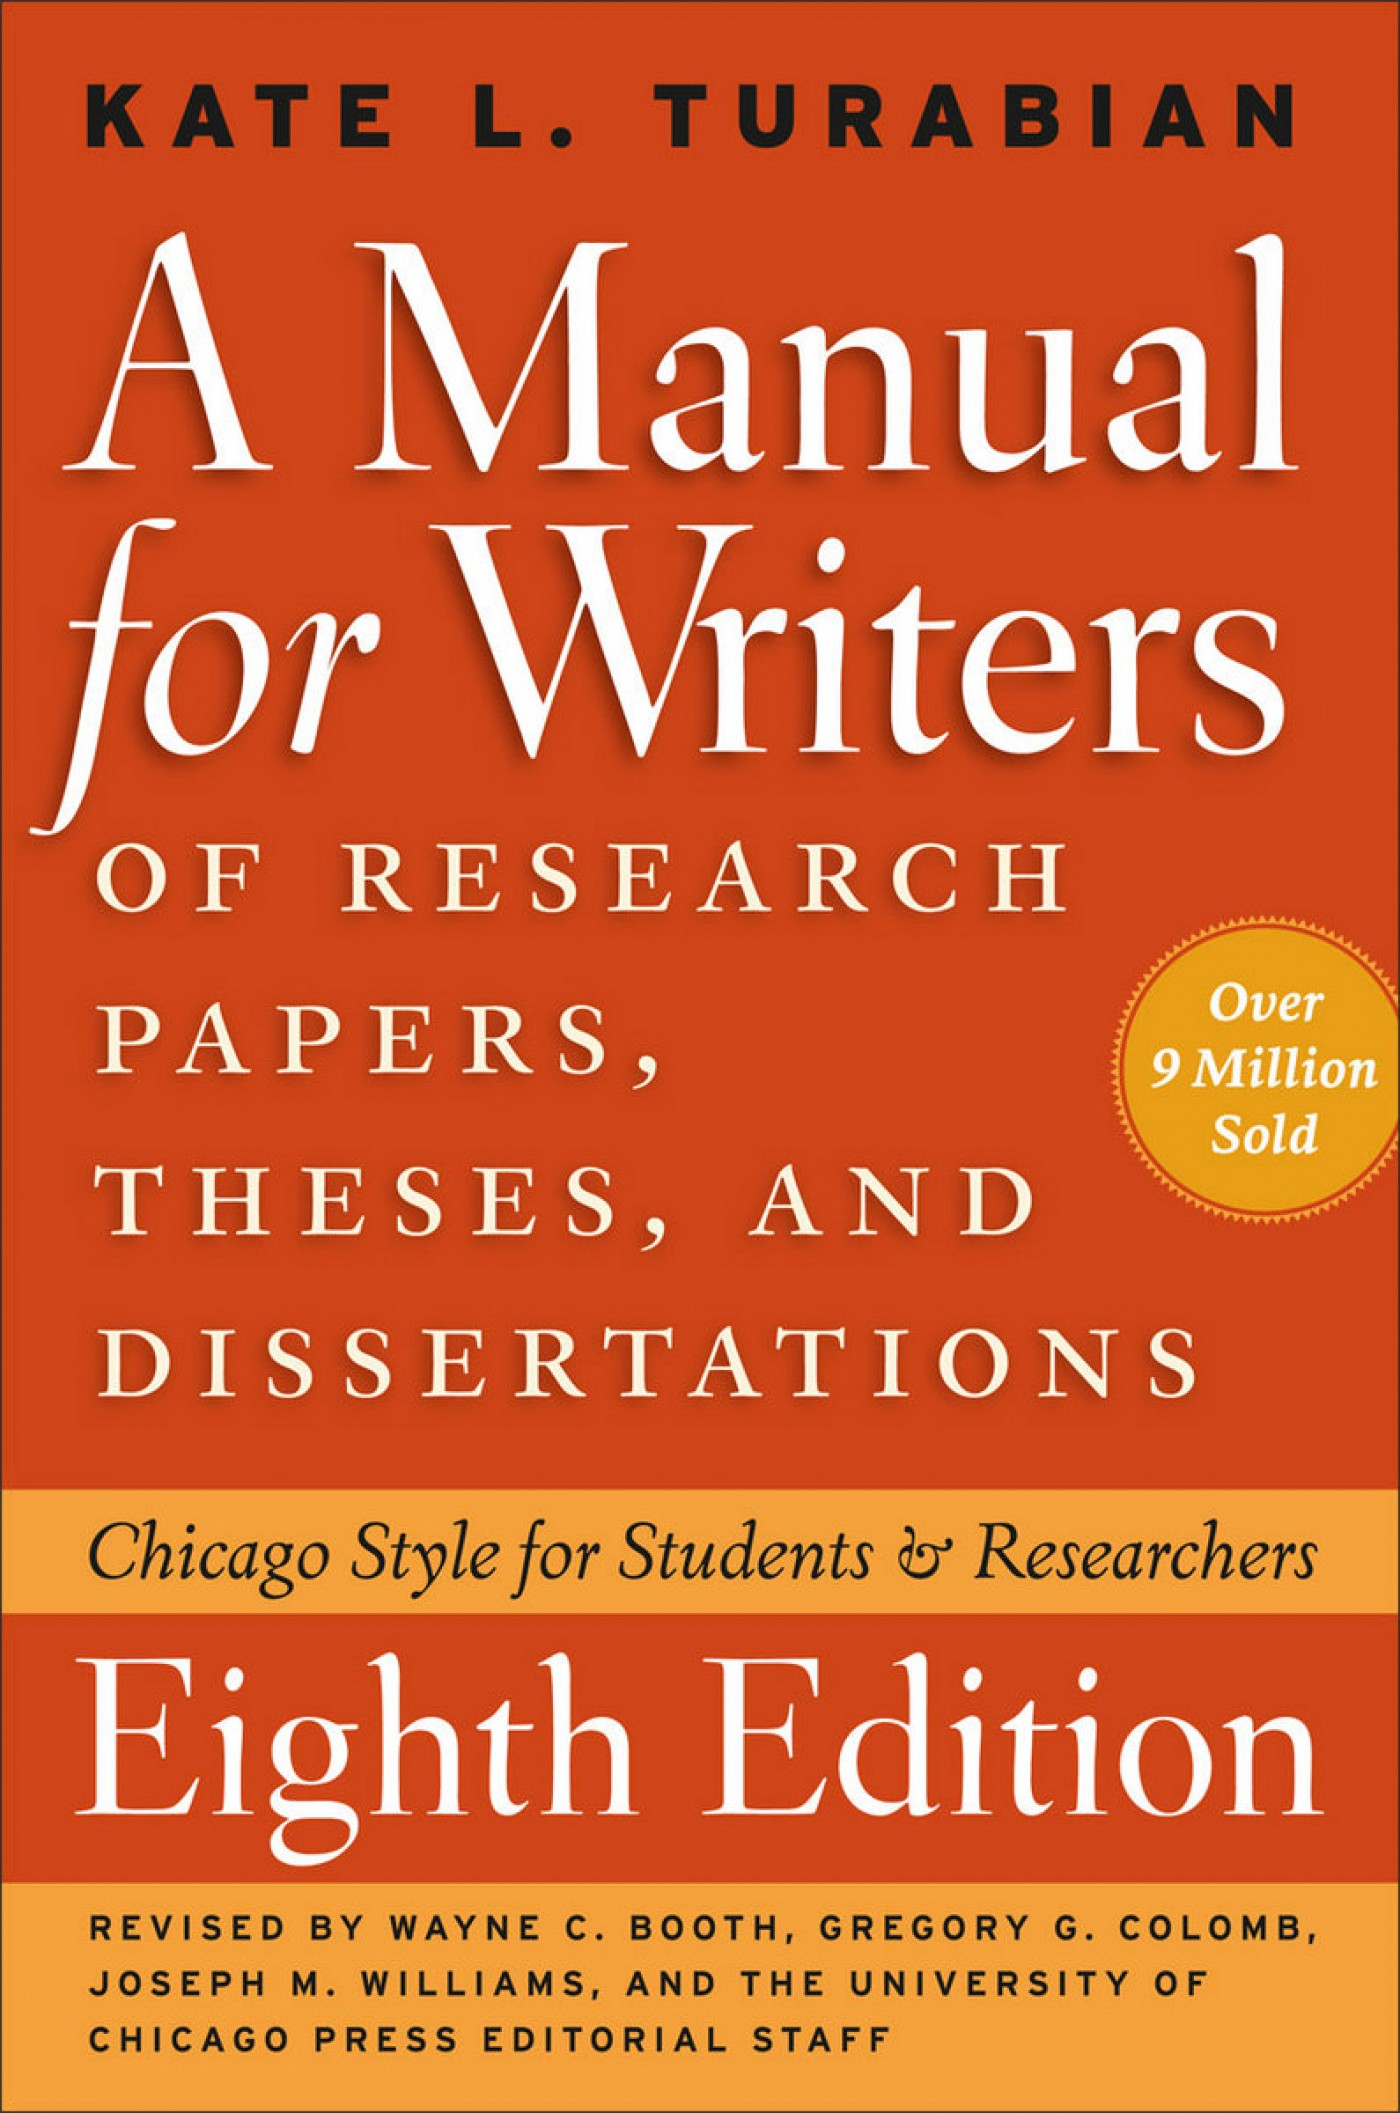 002 Frontcover Manual For Writers Of Researchs Theses And Dissertations Sensational A Research Papers Ed. 8 8th Edition Ninth Pdf 1400